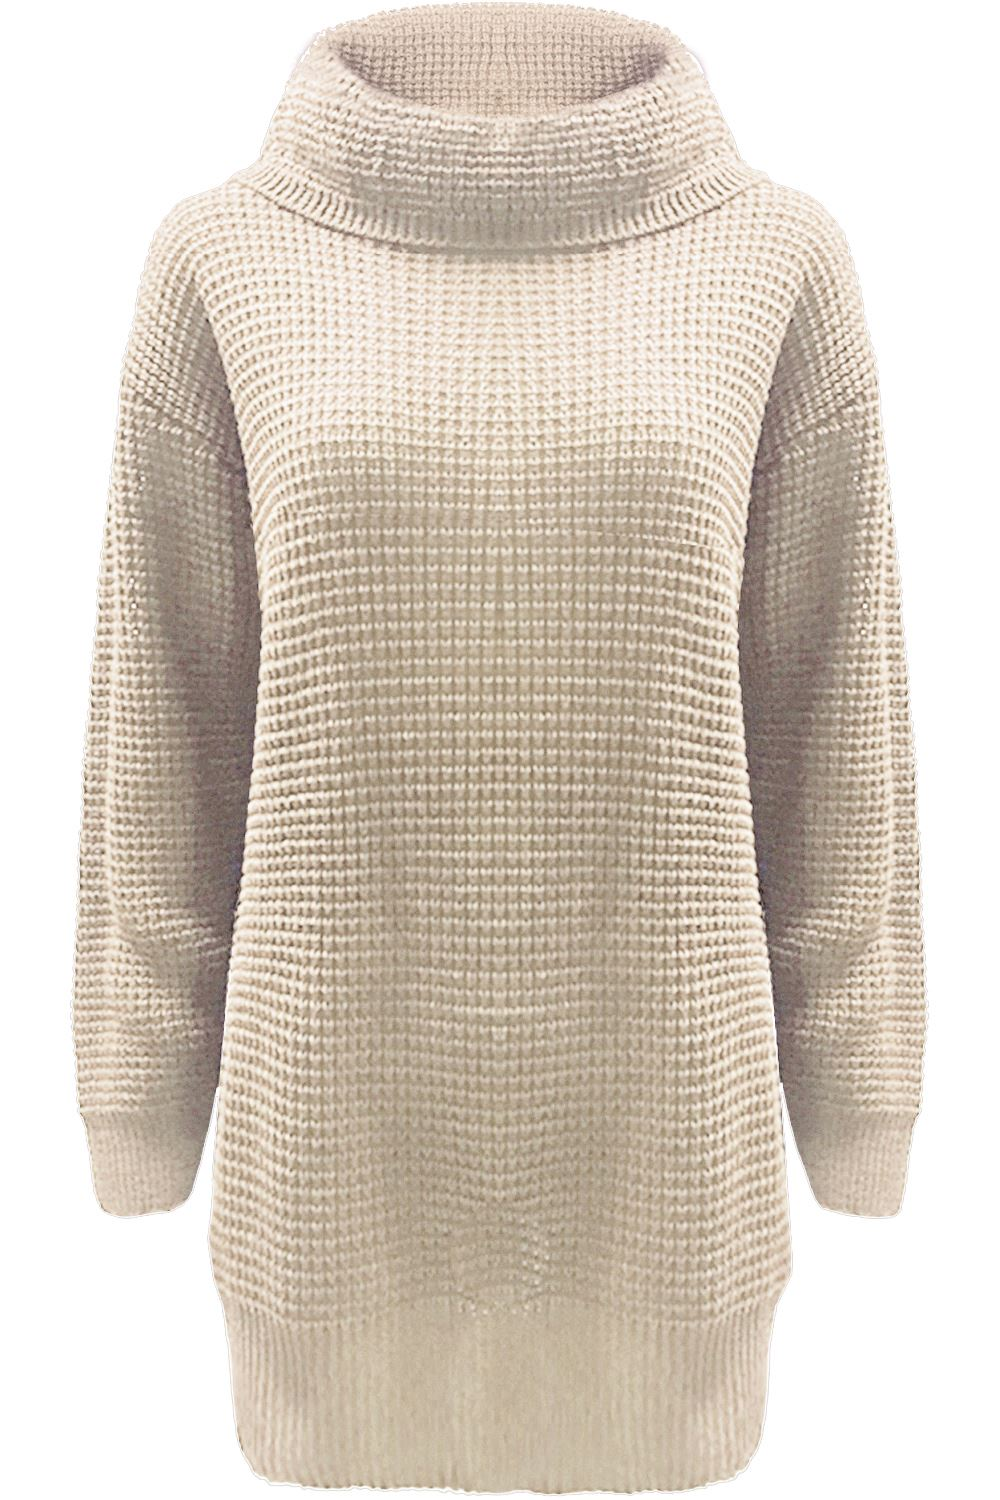 a4147d4bd New Womens Chunky Knitted Full Sleeve High Polo Neck Oversized Mini ...